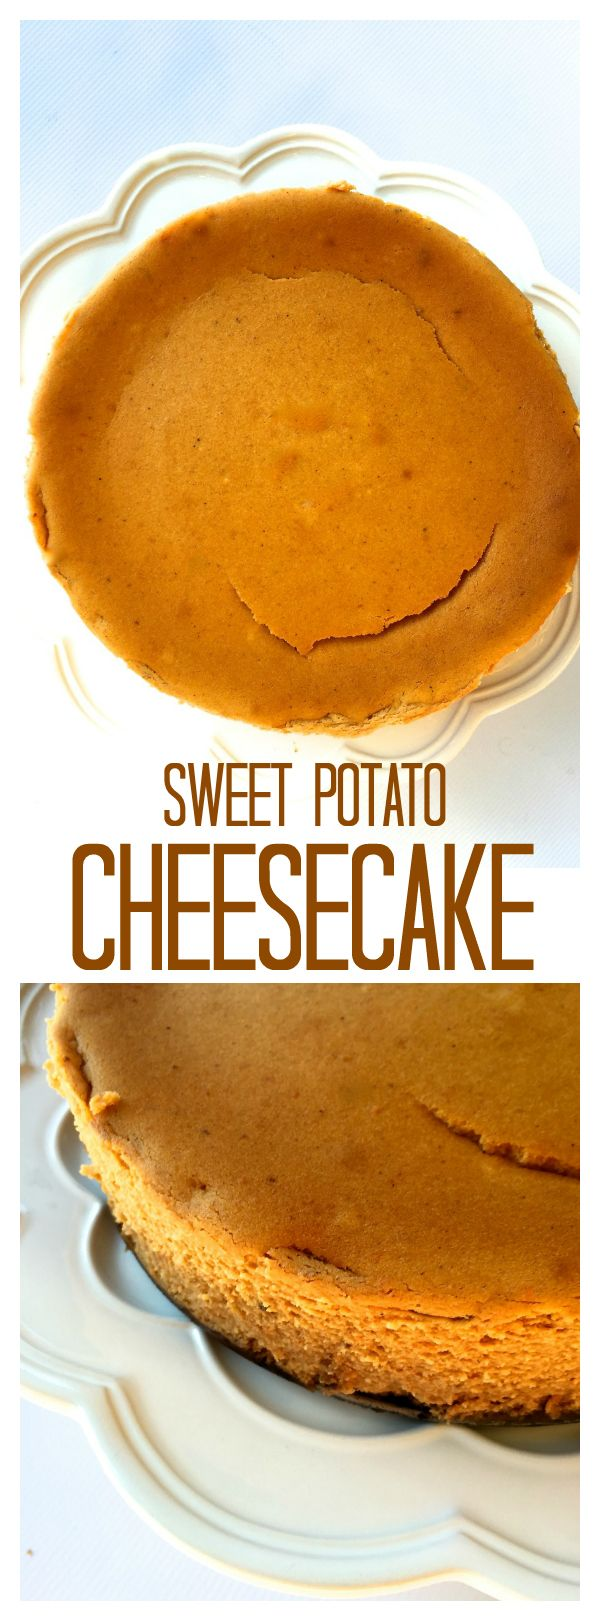 Make ahead this Sweet Potato Cheesecake for easy entertaining! at ReluctantEntertainer.com